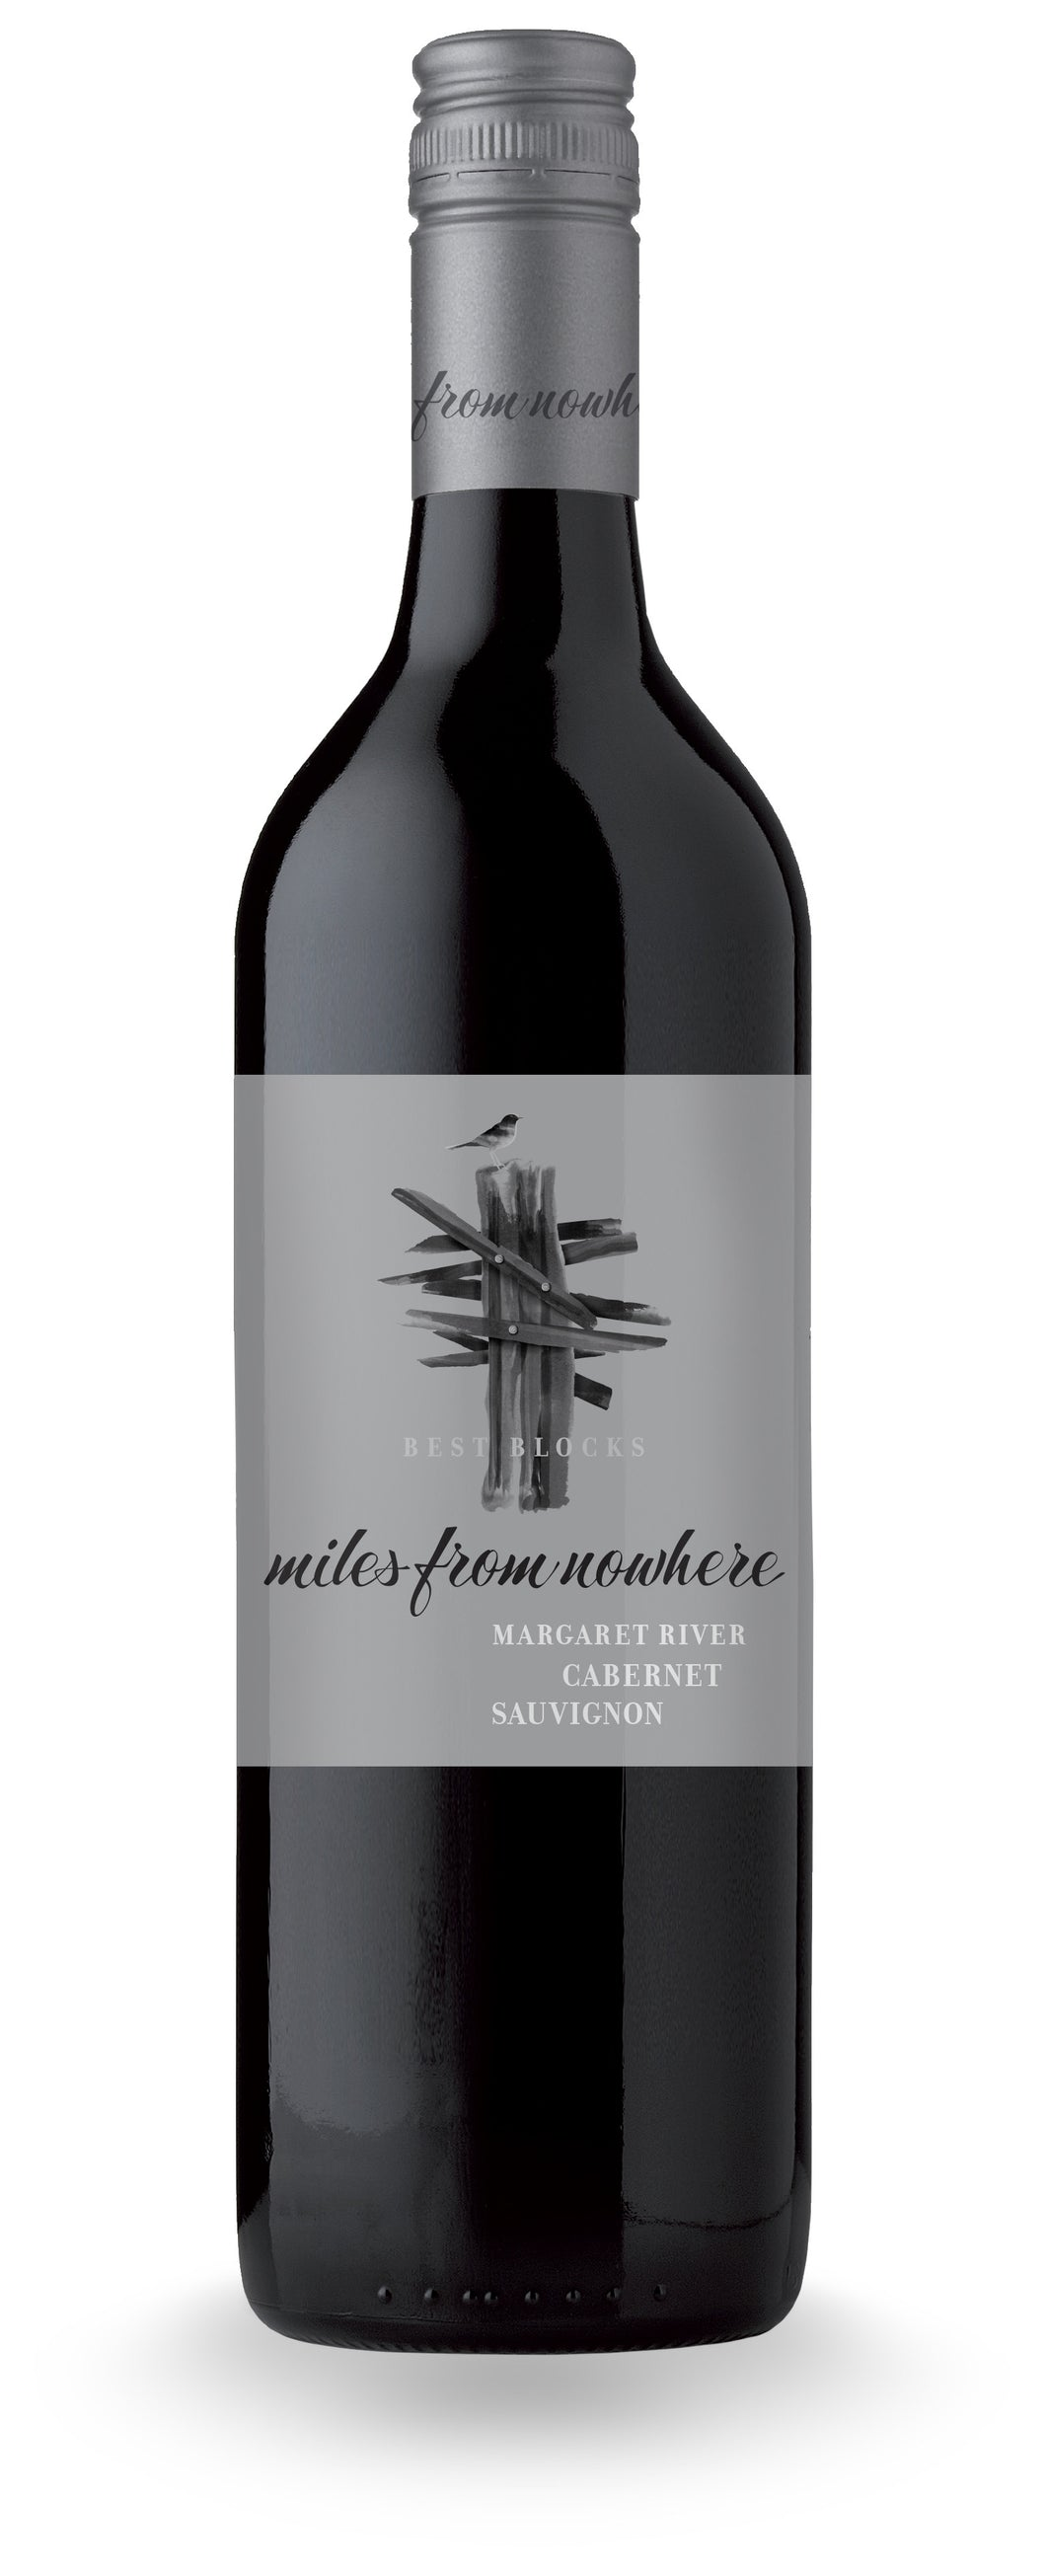 Miles From Nowhere Best Blocks Cabernet Sauvignon 2015 - Network Wines